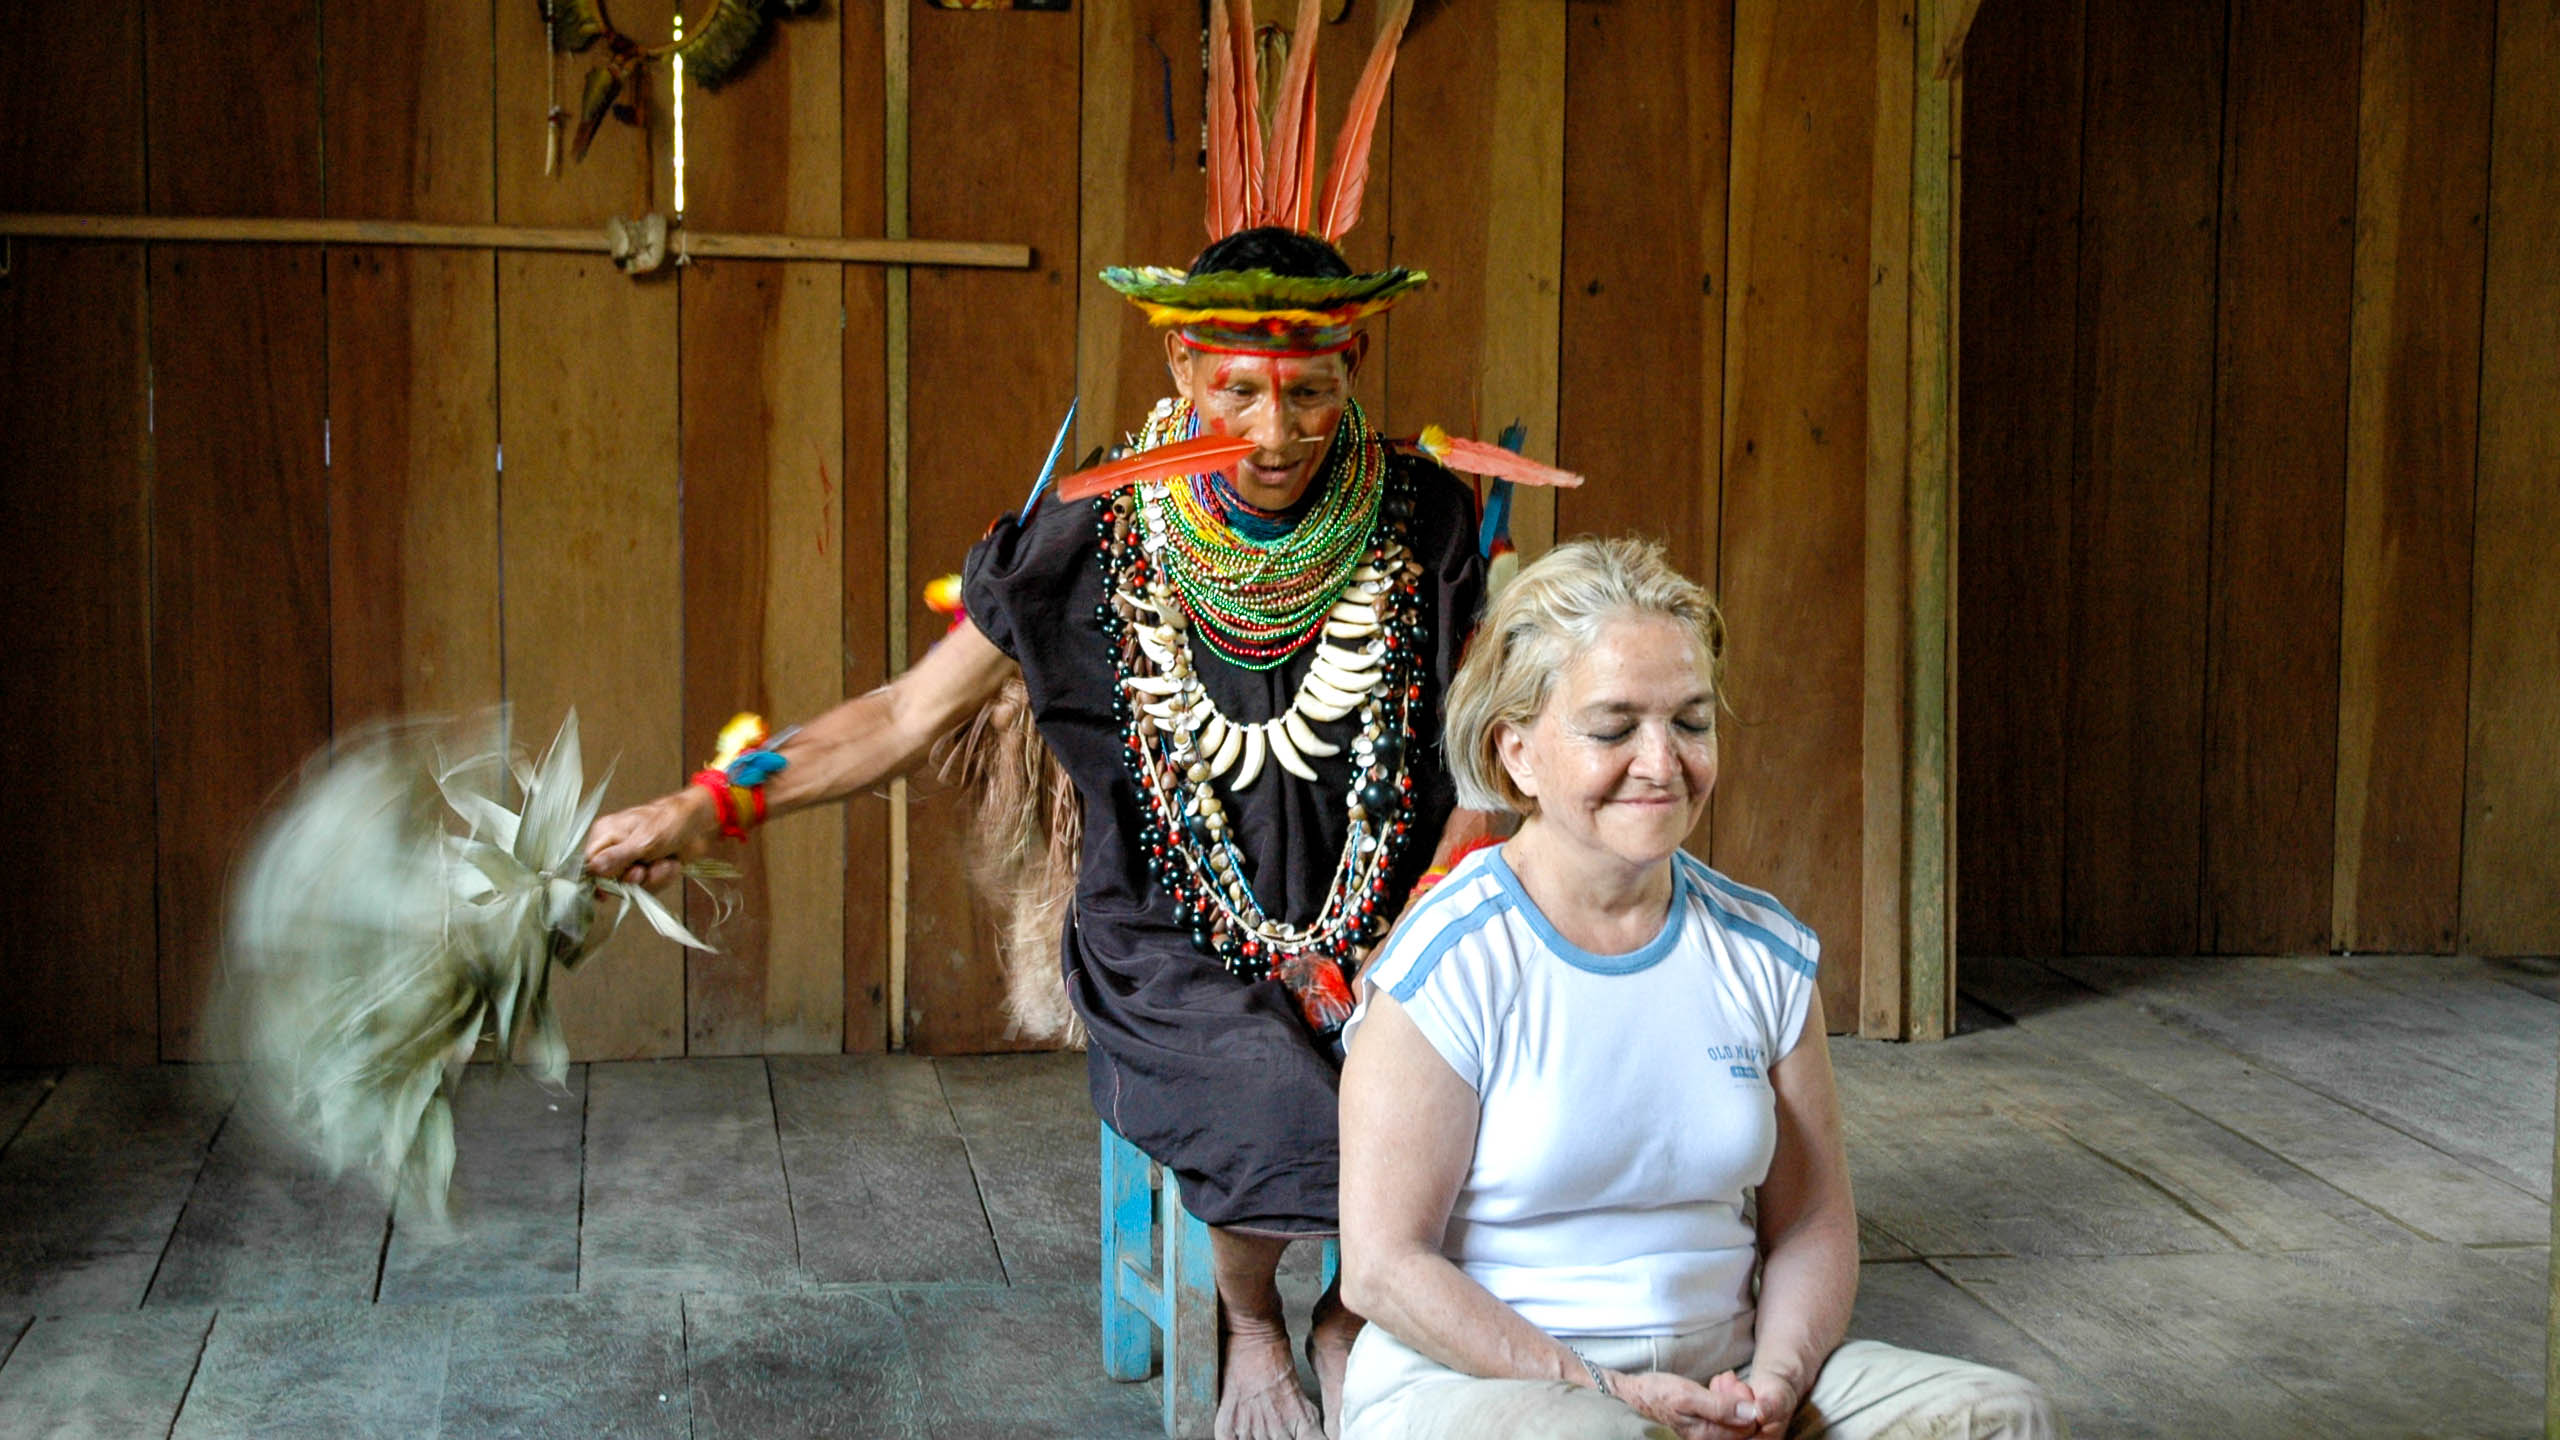 Woman sits in front of Ecuador man in traditional dress